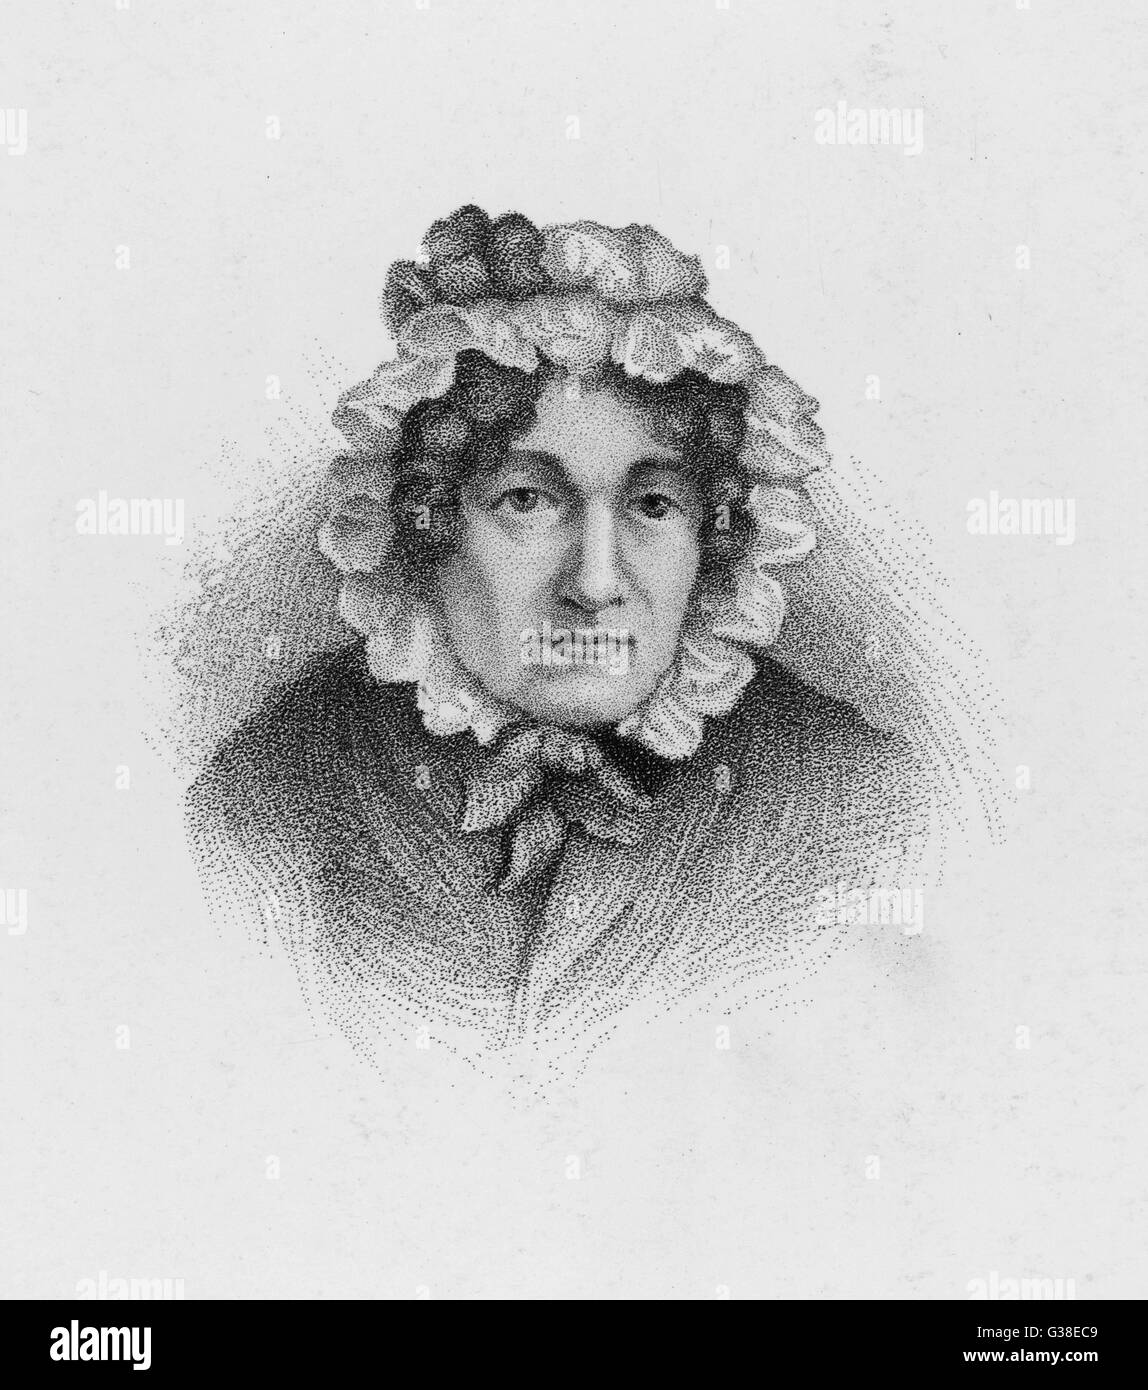 charles lamb stock photos charles lamb stock images  mary lamb english writer and sister of charles lamb date 1764 1847